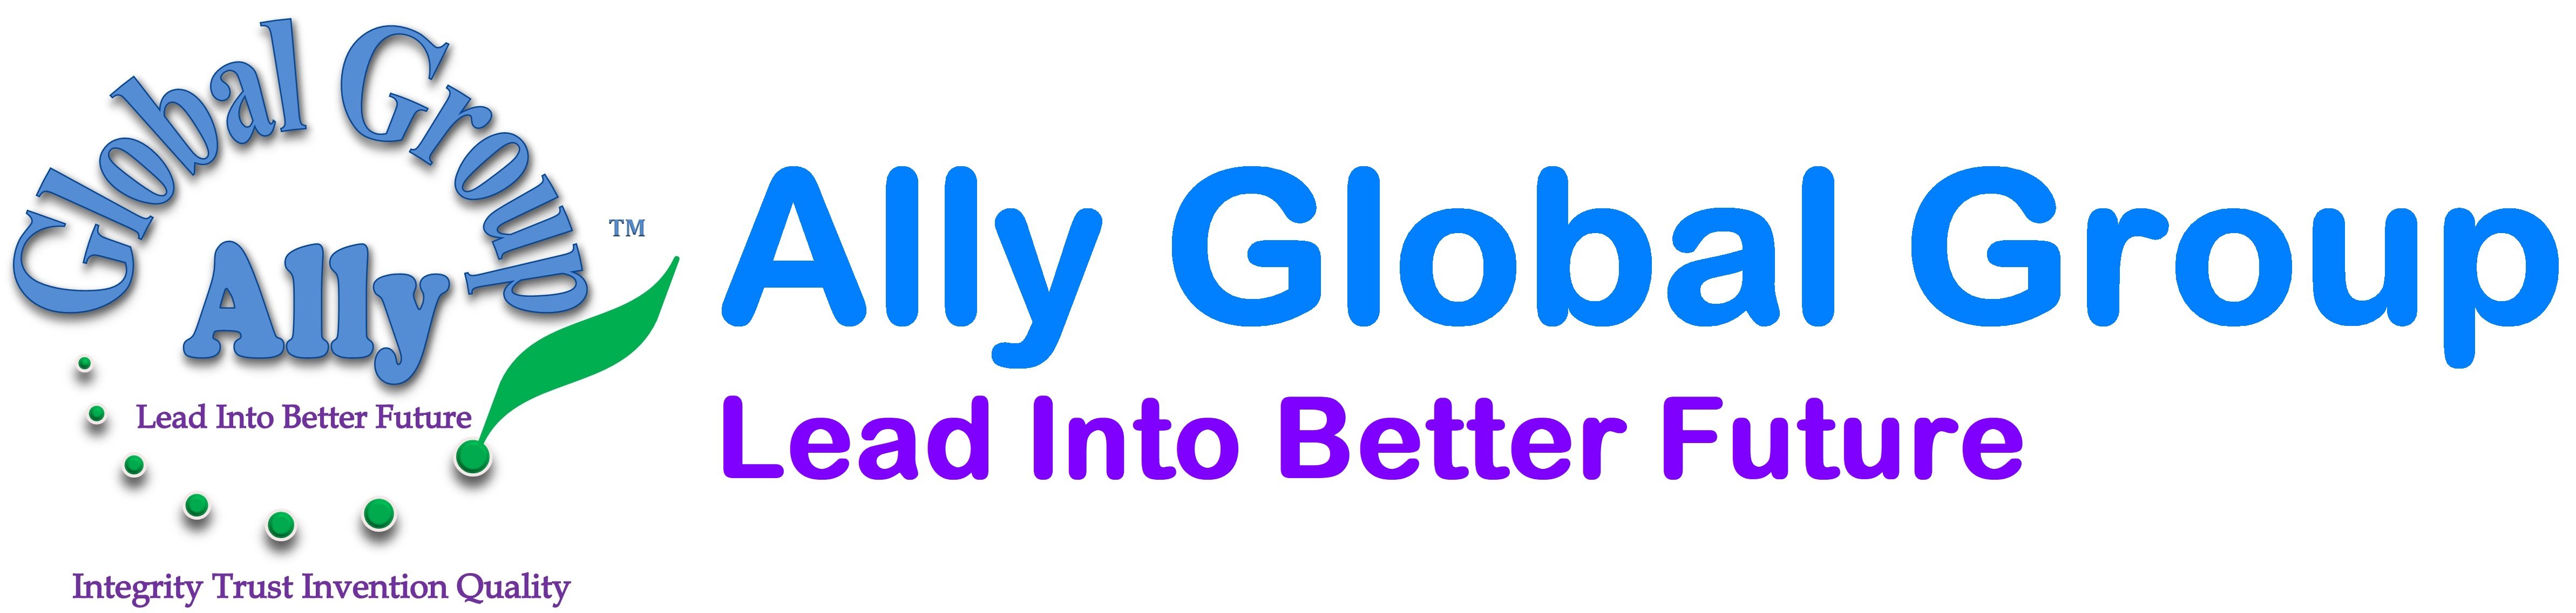 Ally Global Group